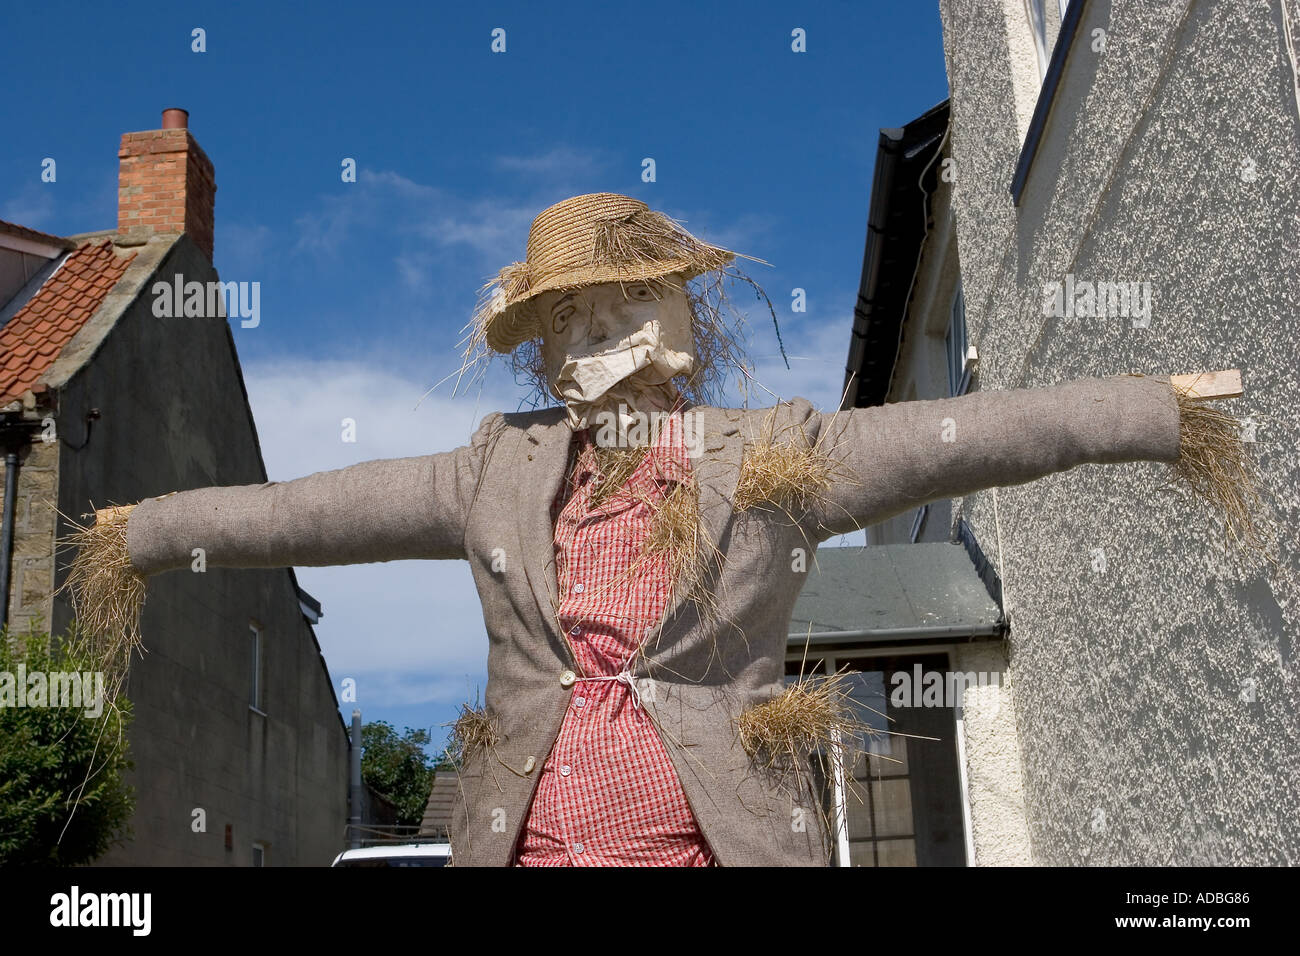 Straw Scarecrow at the Scarecrow Festival, Hinderwell, Yorkshire Valley, North Yorkshire, Northern England, UK Stock Photo